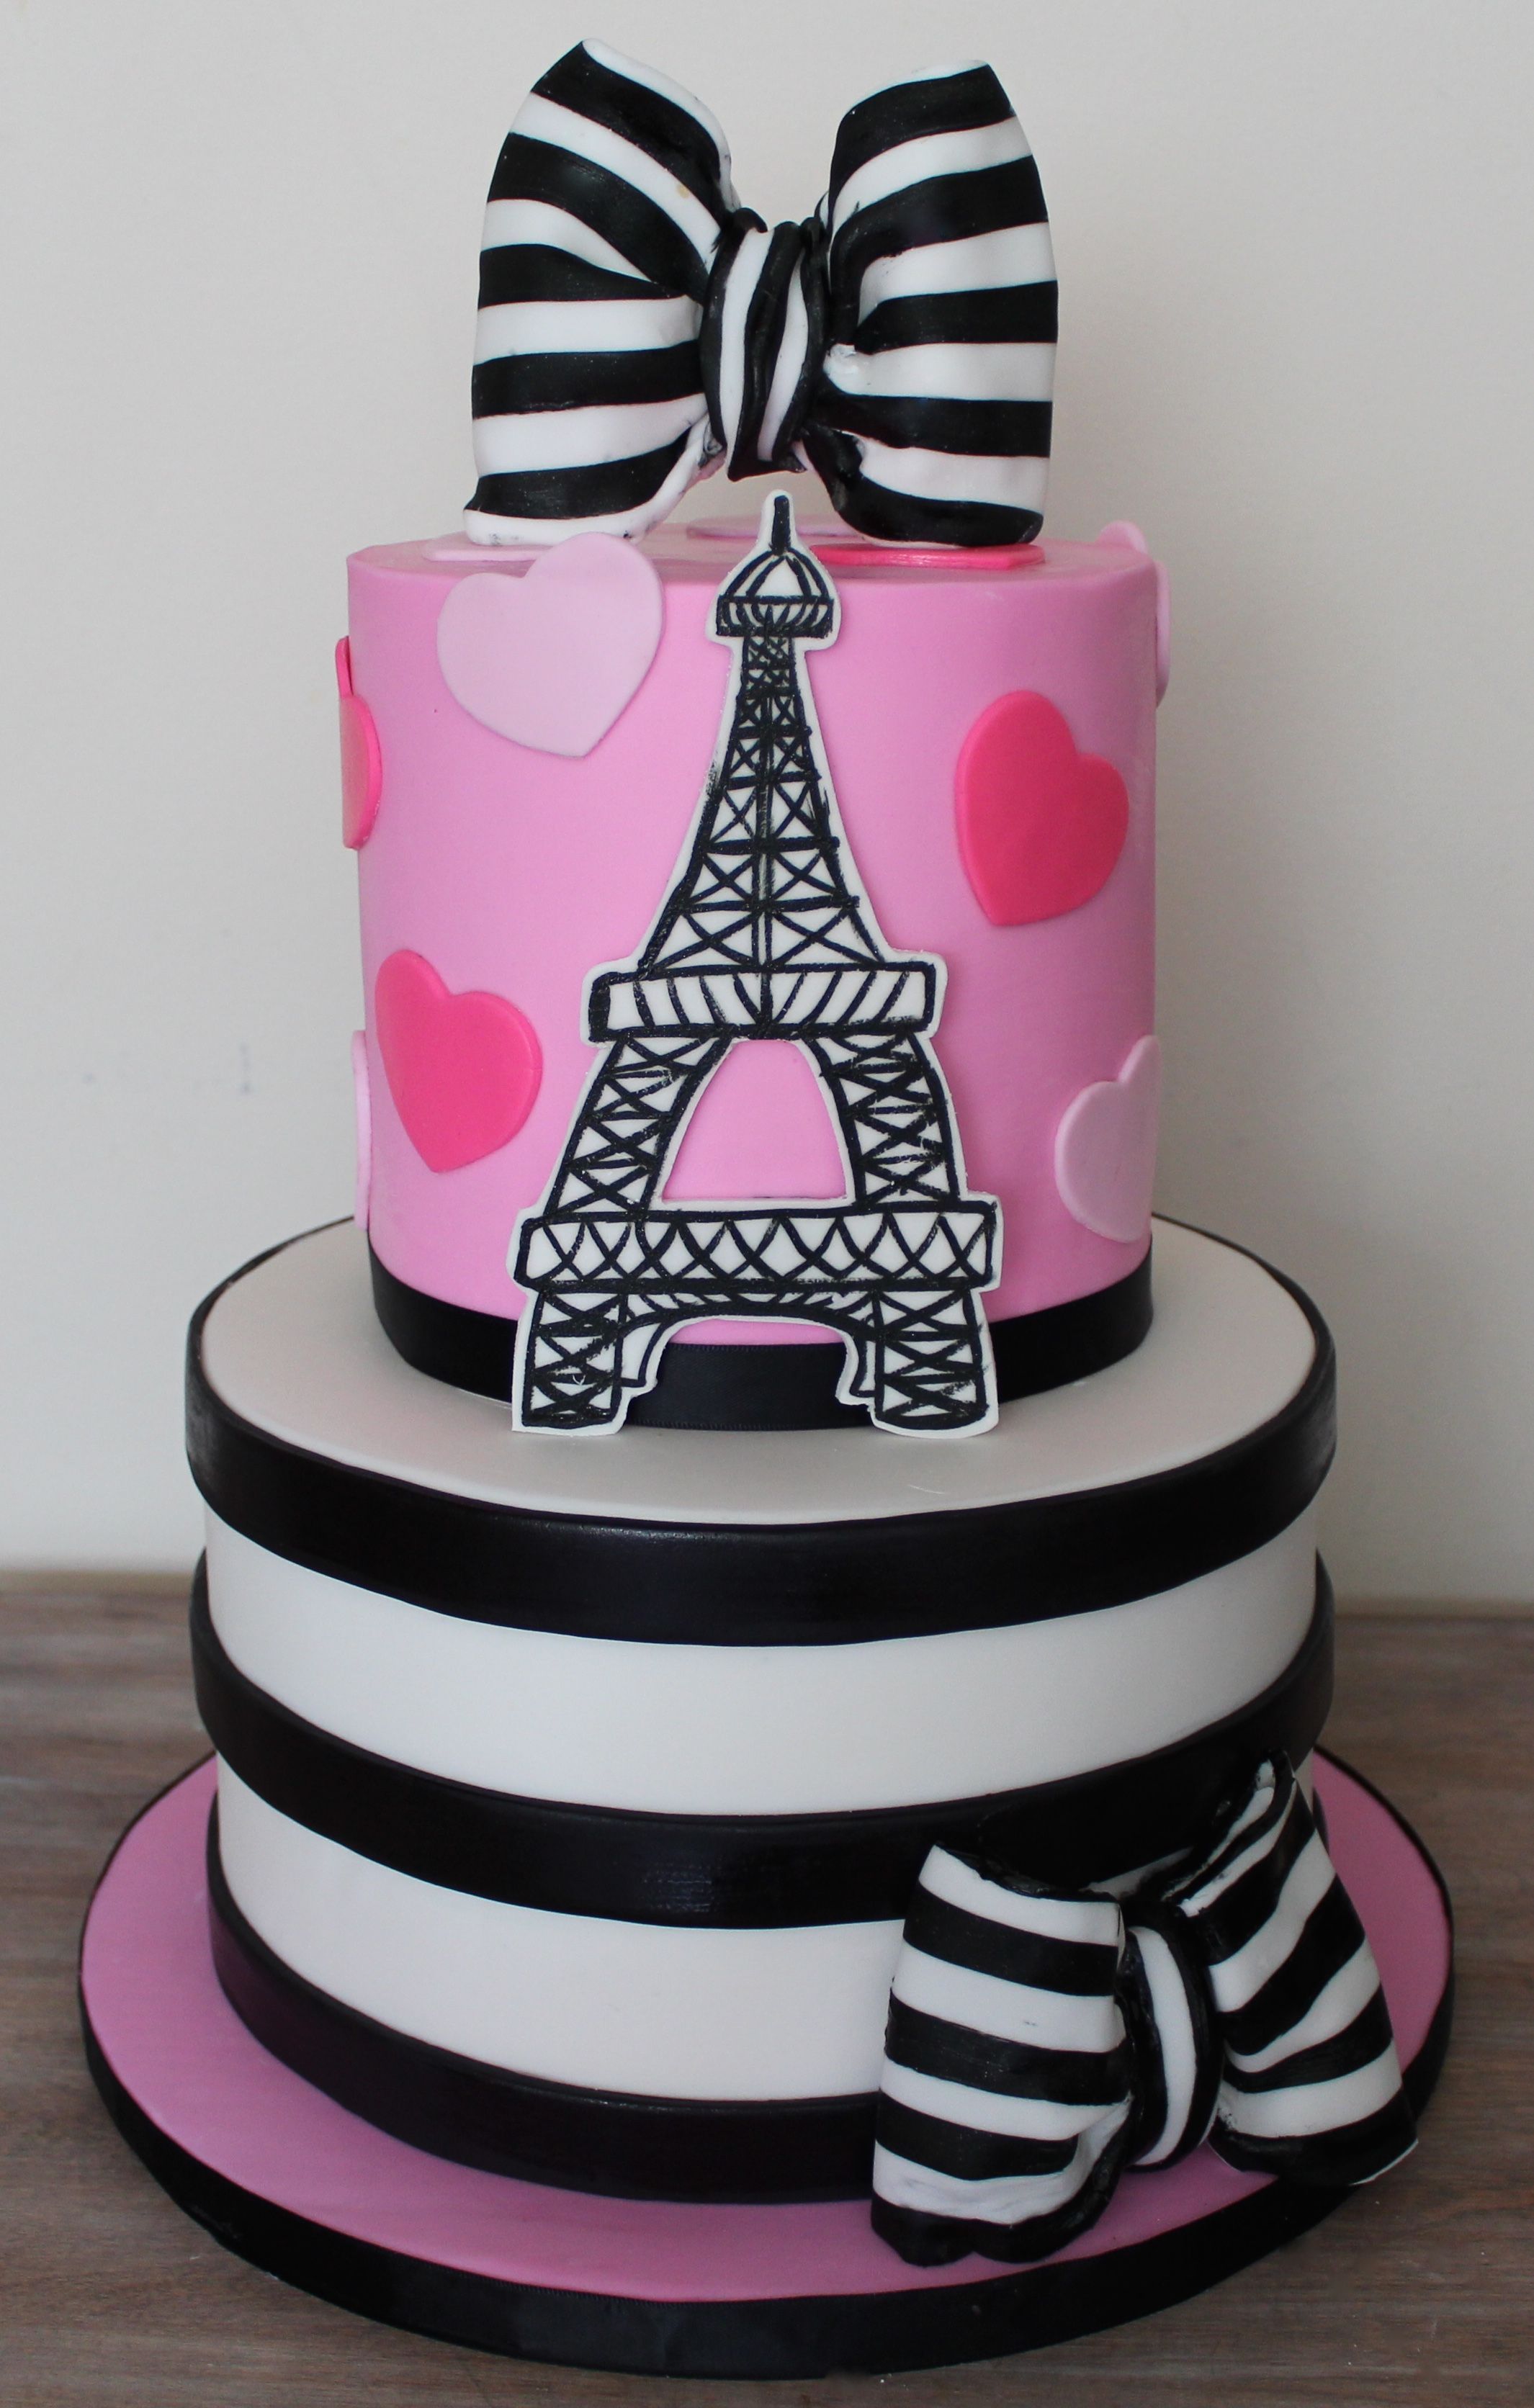 Paris France Cake Black And White Stripes Bows Hearts Love